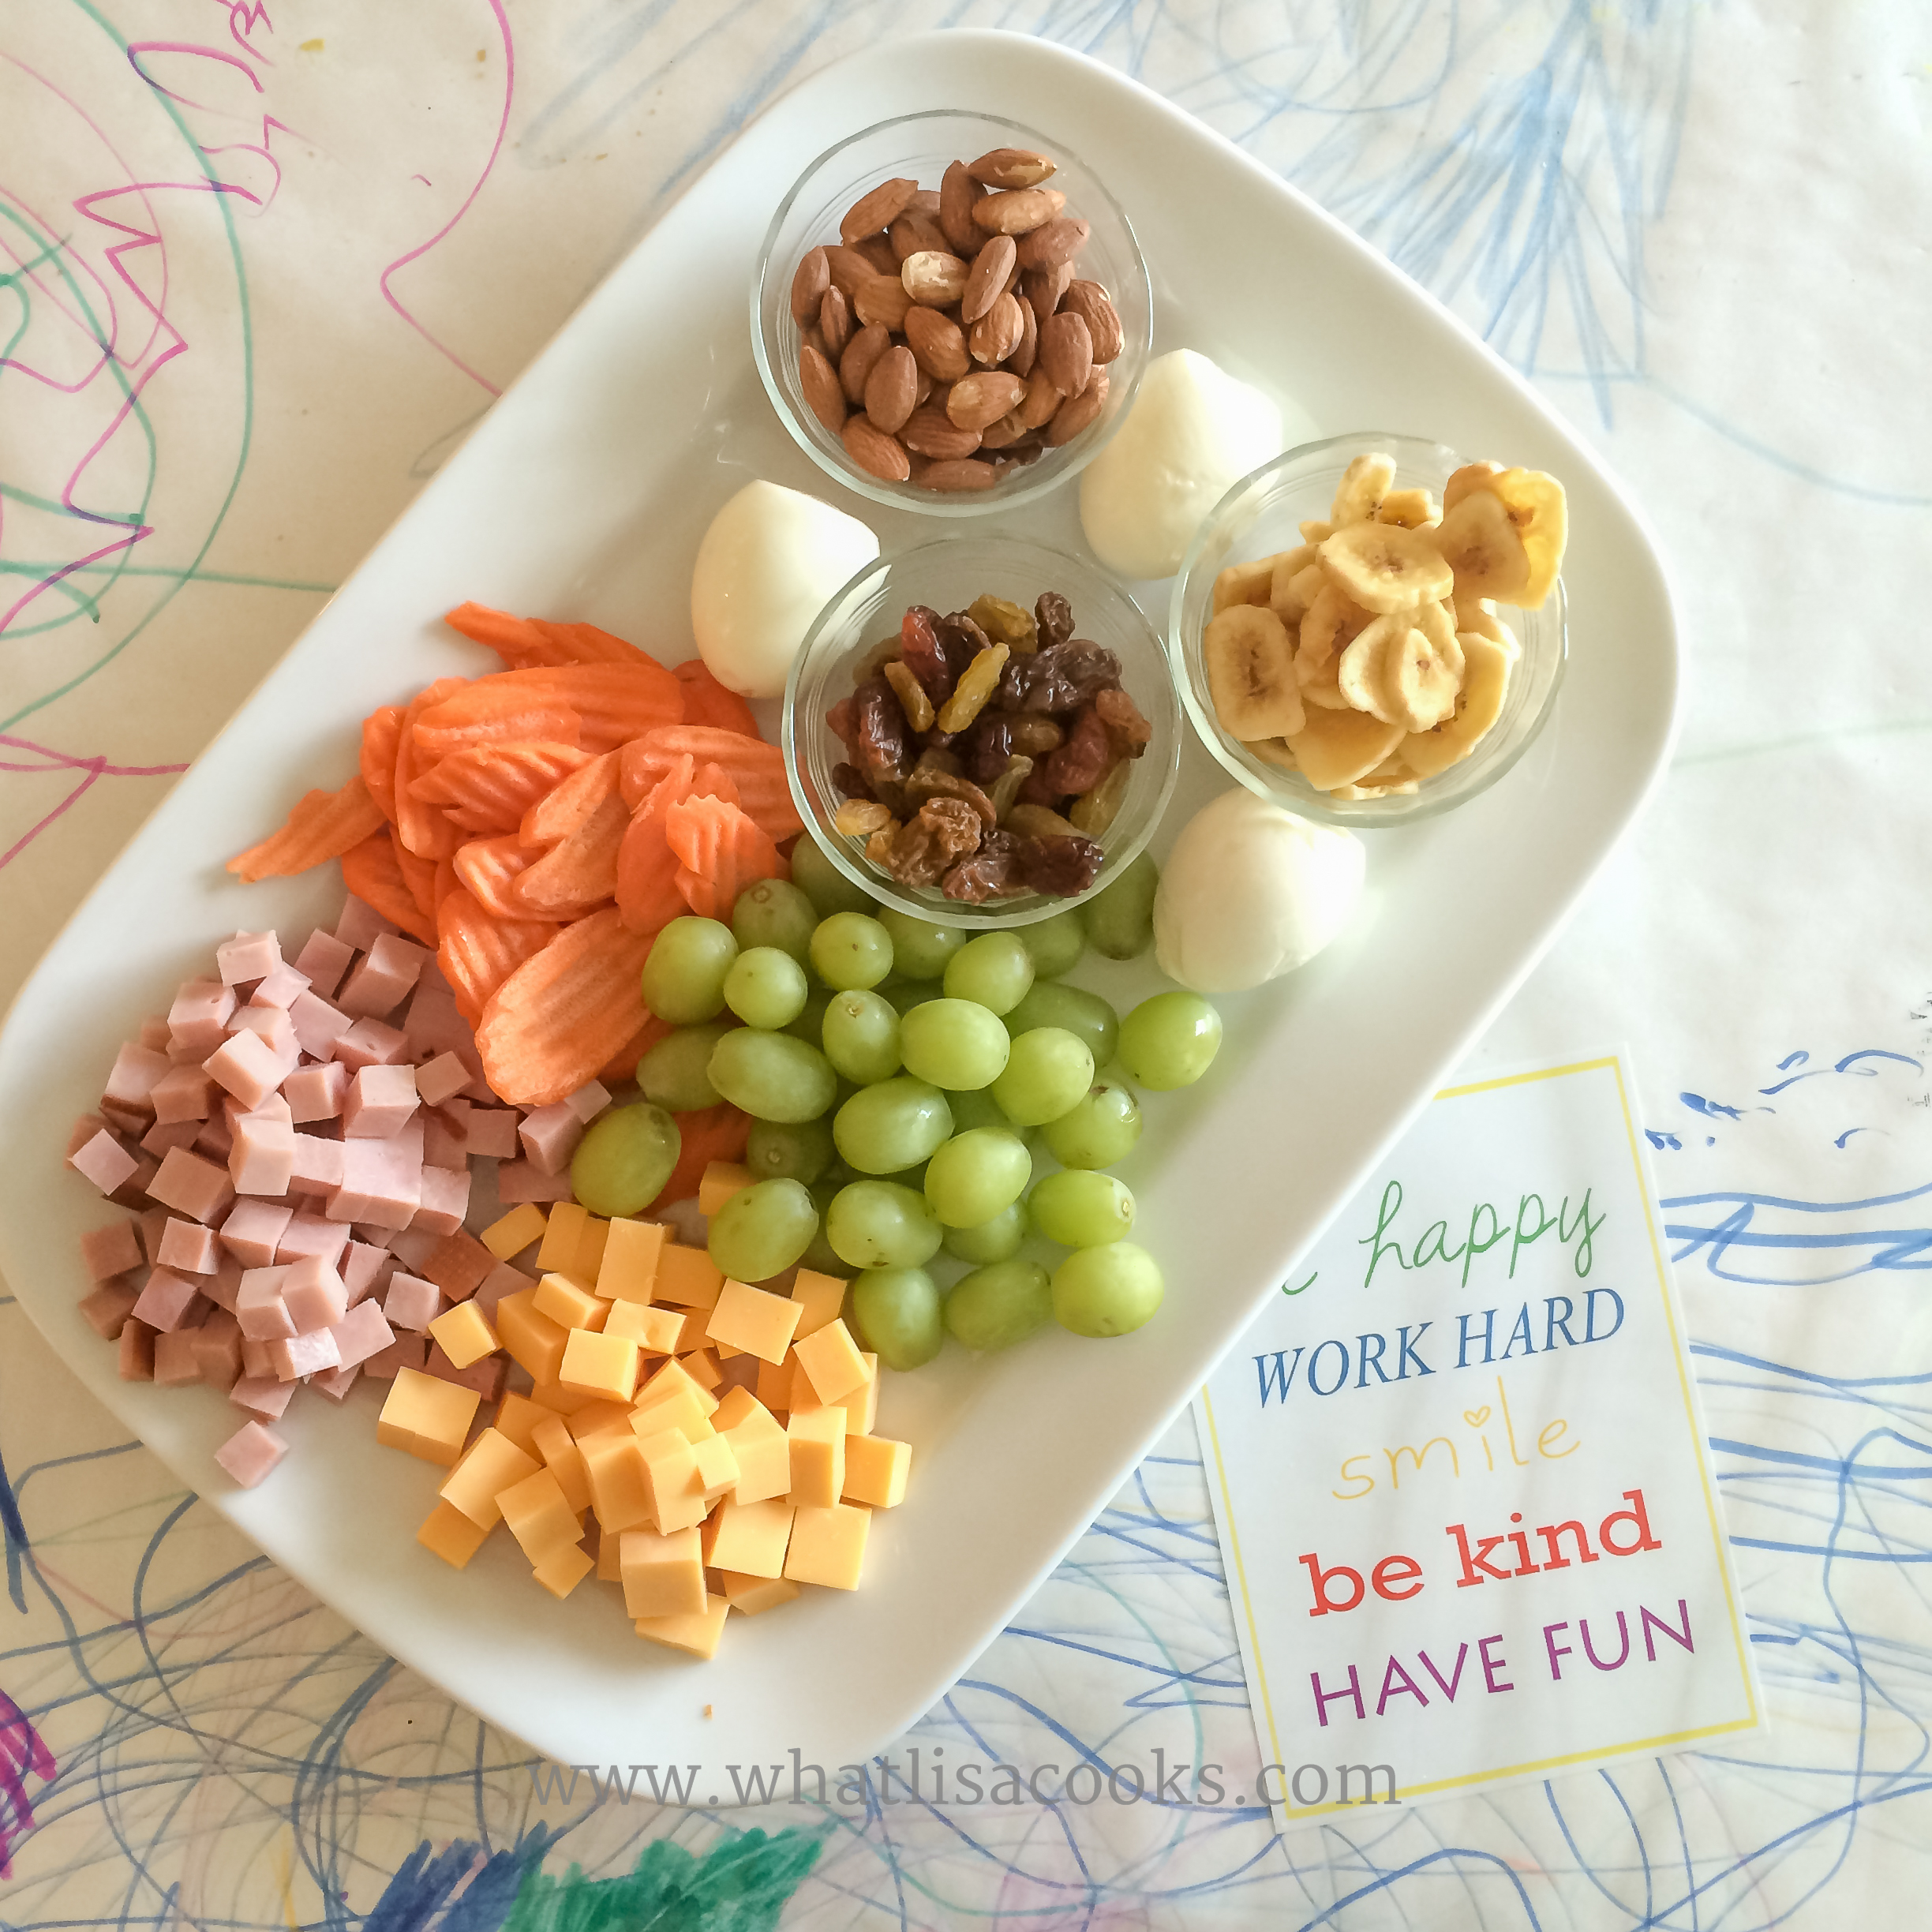 Cubes of ham and cheese, carrots, grapes, eggs, raisins, almonds, banana chips.